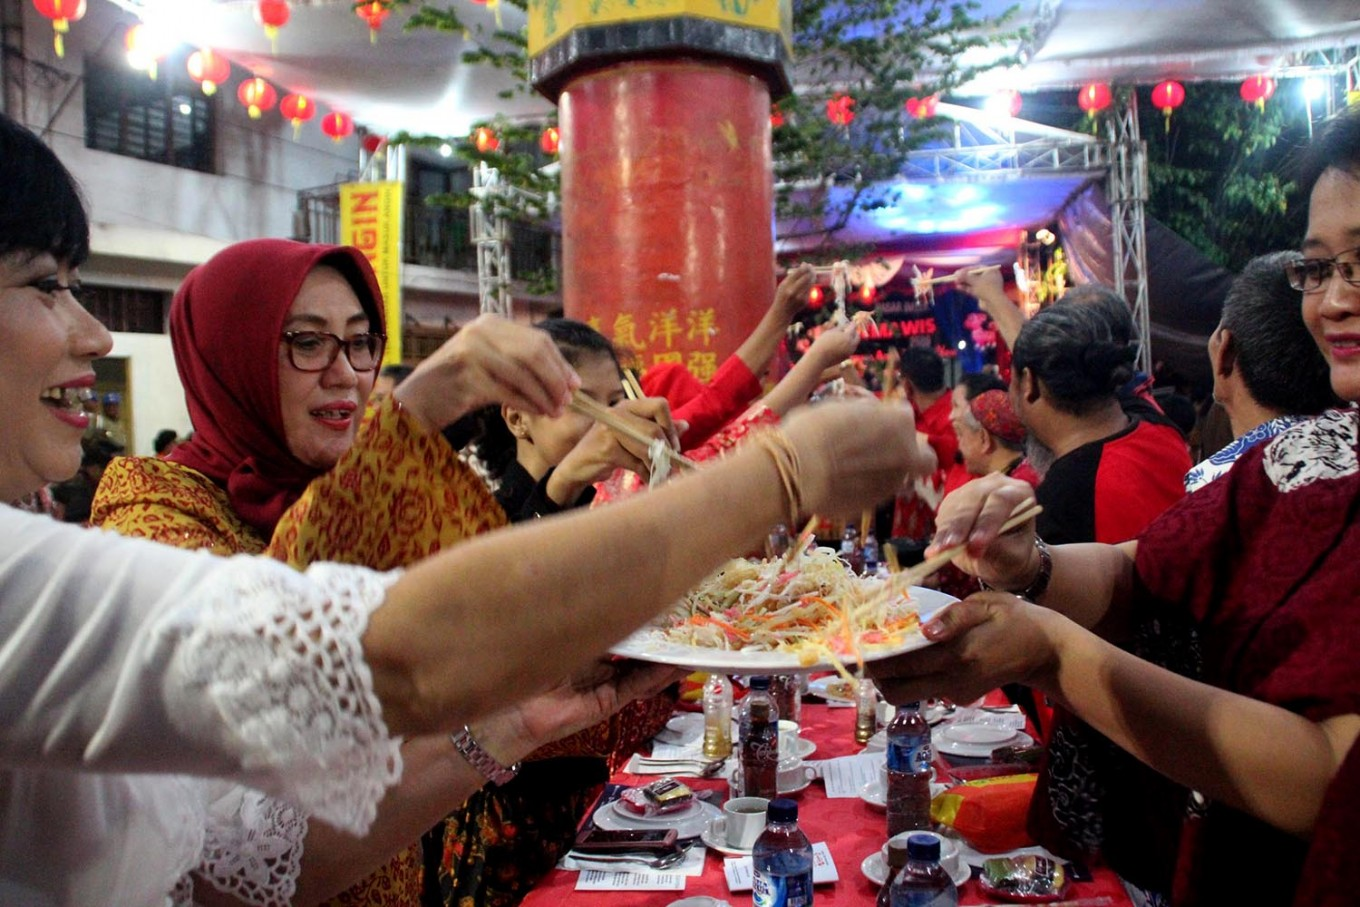 Semarang residents enjoy dinner at the tok panjang (long table) on the eve of Chinese New Year, locally known as Imlek. The main dishes are salad and fish. JP/Suherdjoko